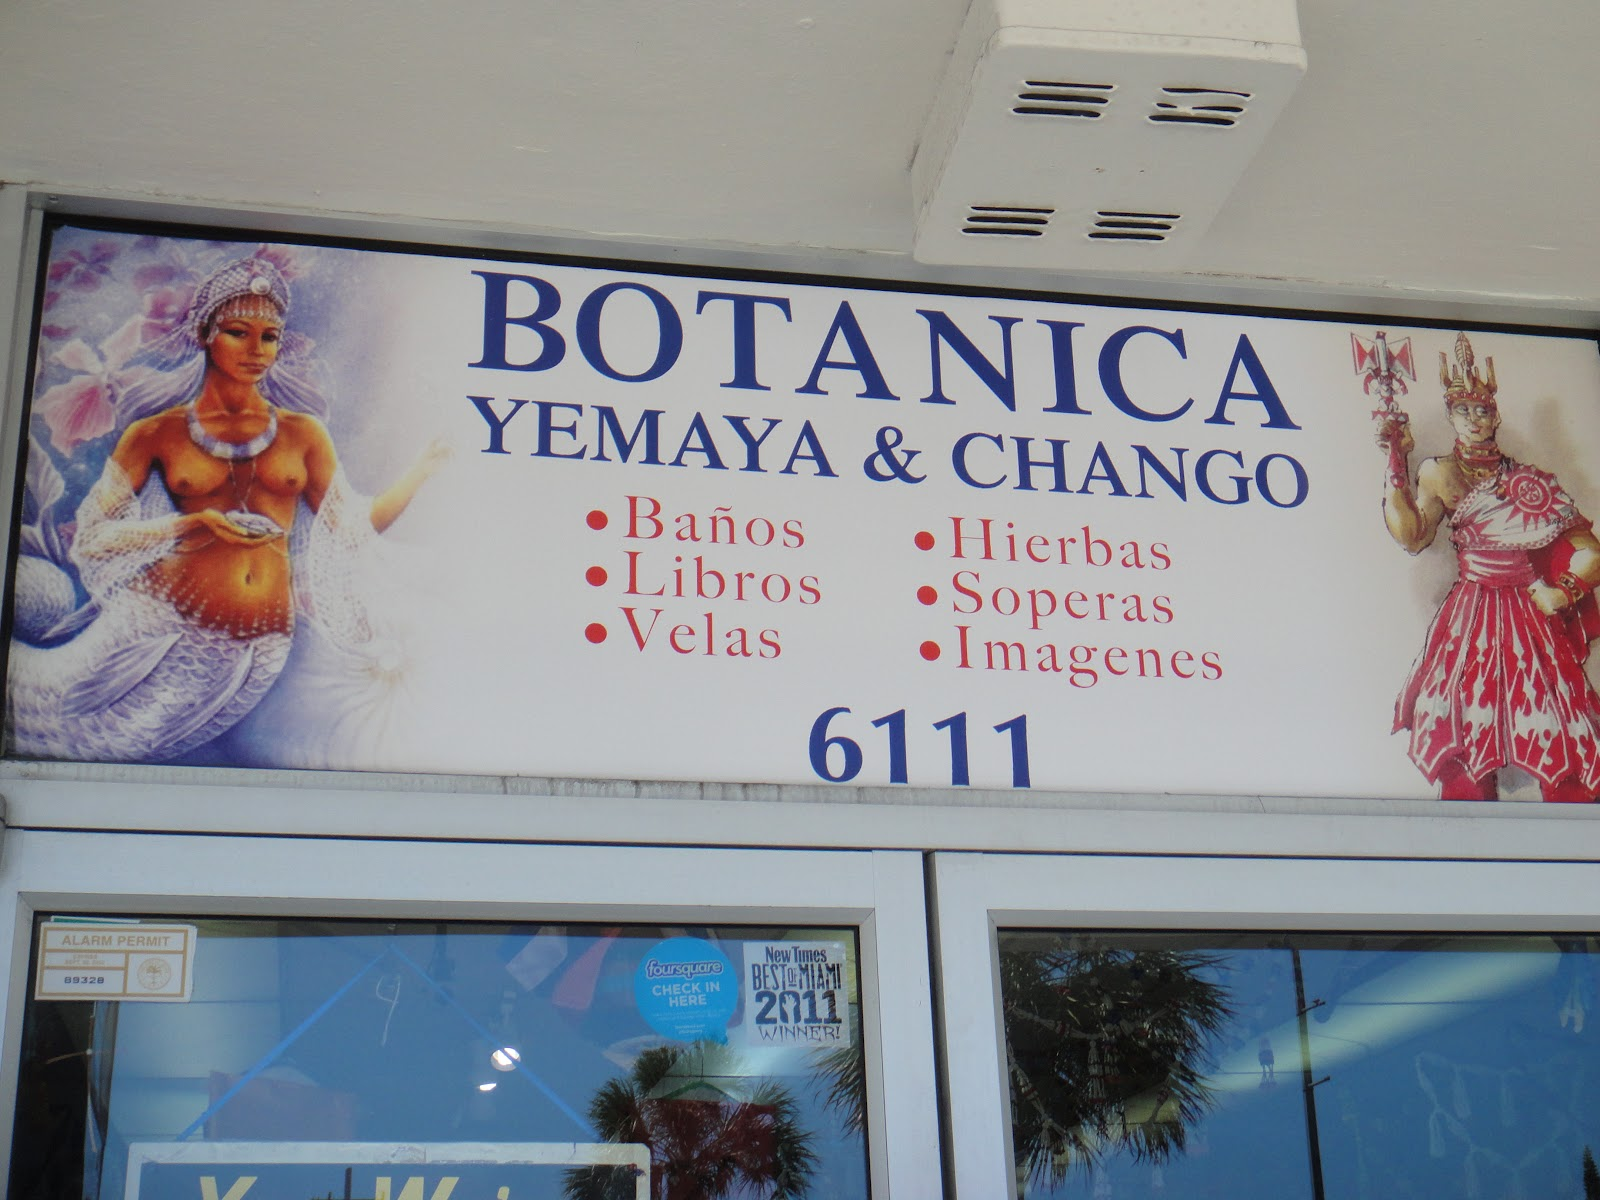 Botanica miami : Restaurants in south county st louis